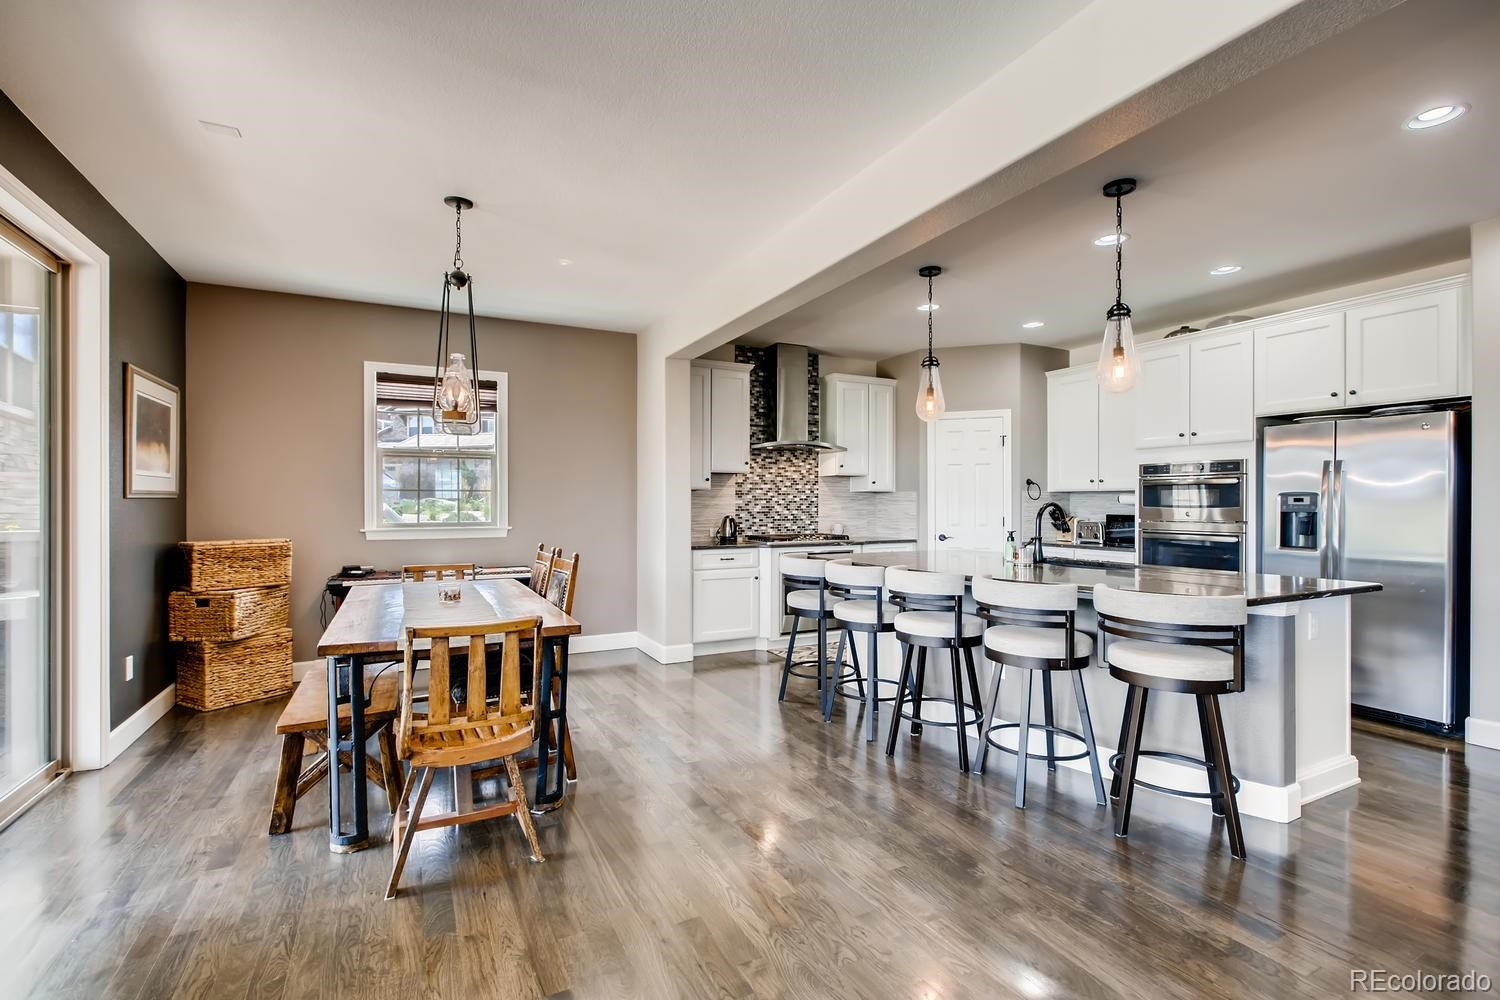 MLS# 5689224 - 11 - 10754 Greycliffe Drive, Highlands Ranch, CO 80126